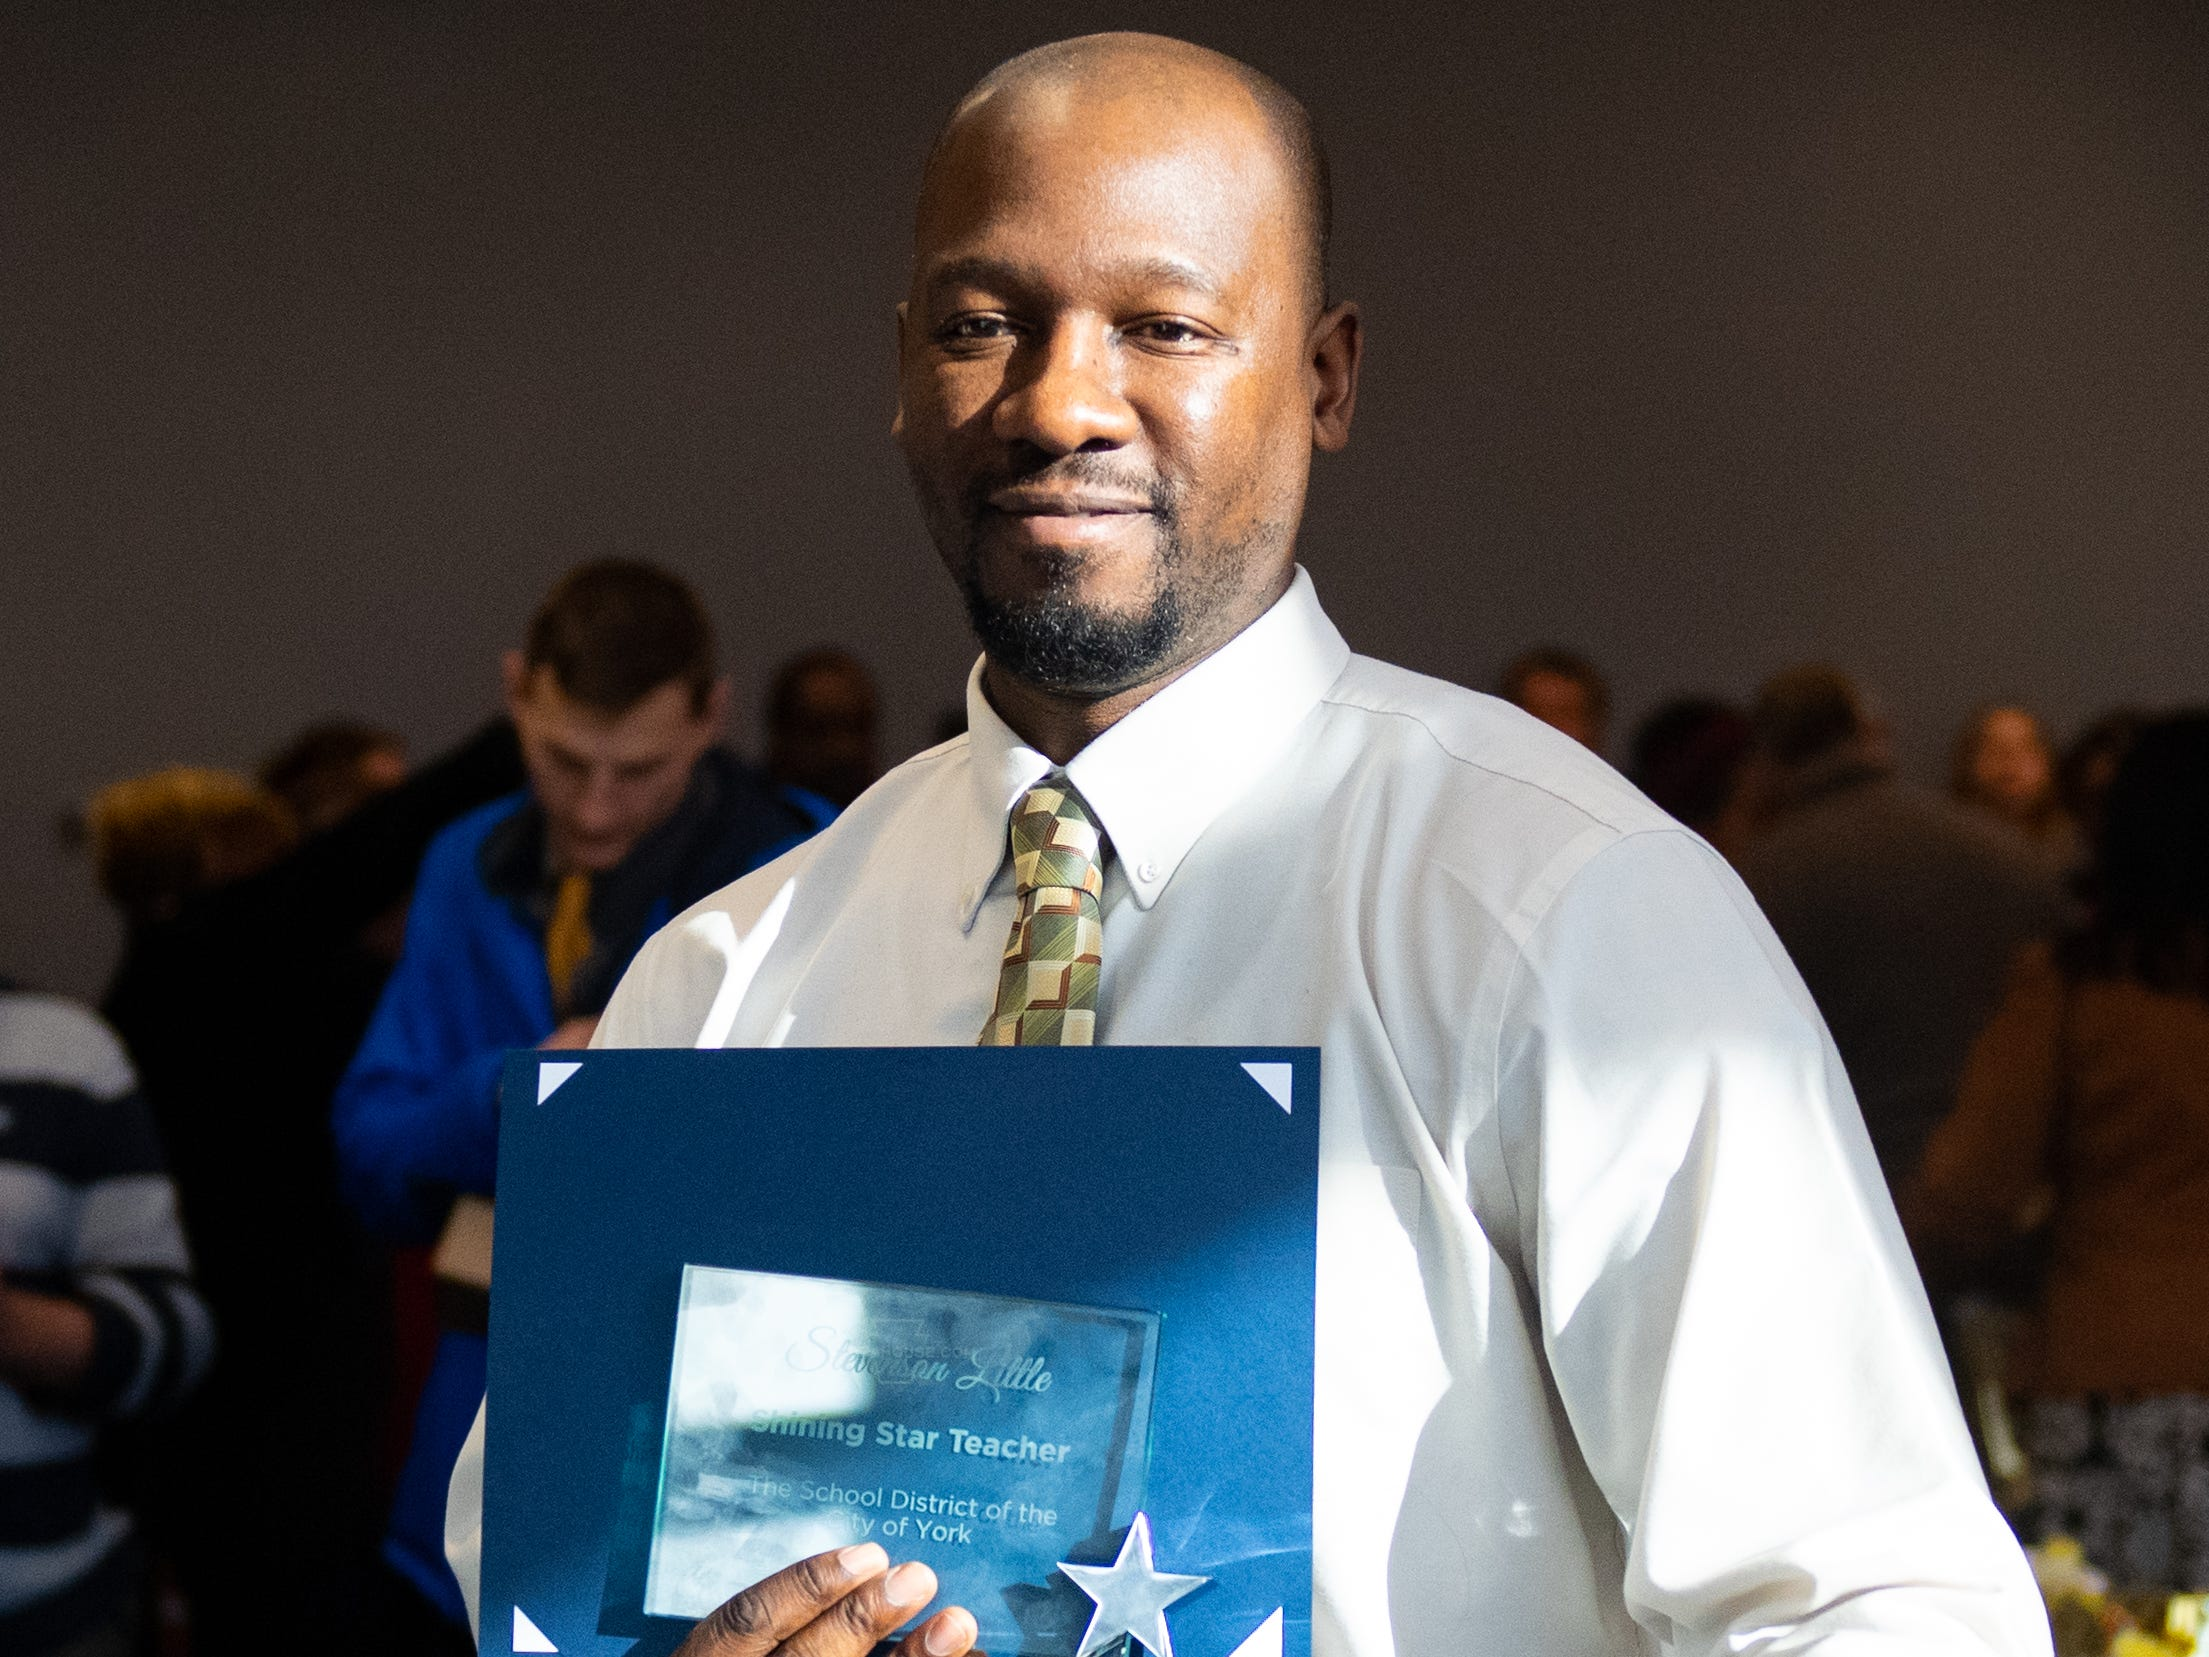 Steven Little, a teacher at Hannah Penn, poses with his Shining Star award during the city of York's Shining Star Teacher Luncheon at the School District building, December 6, 2018.